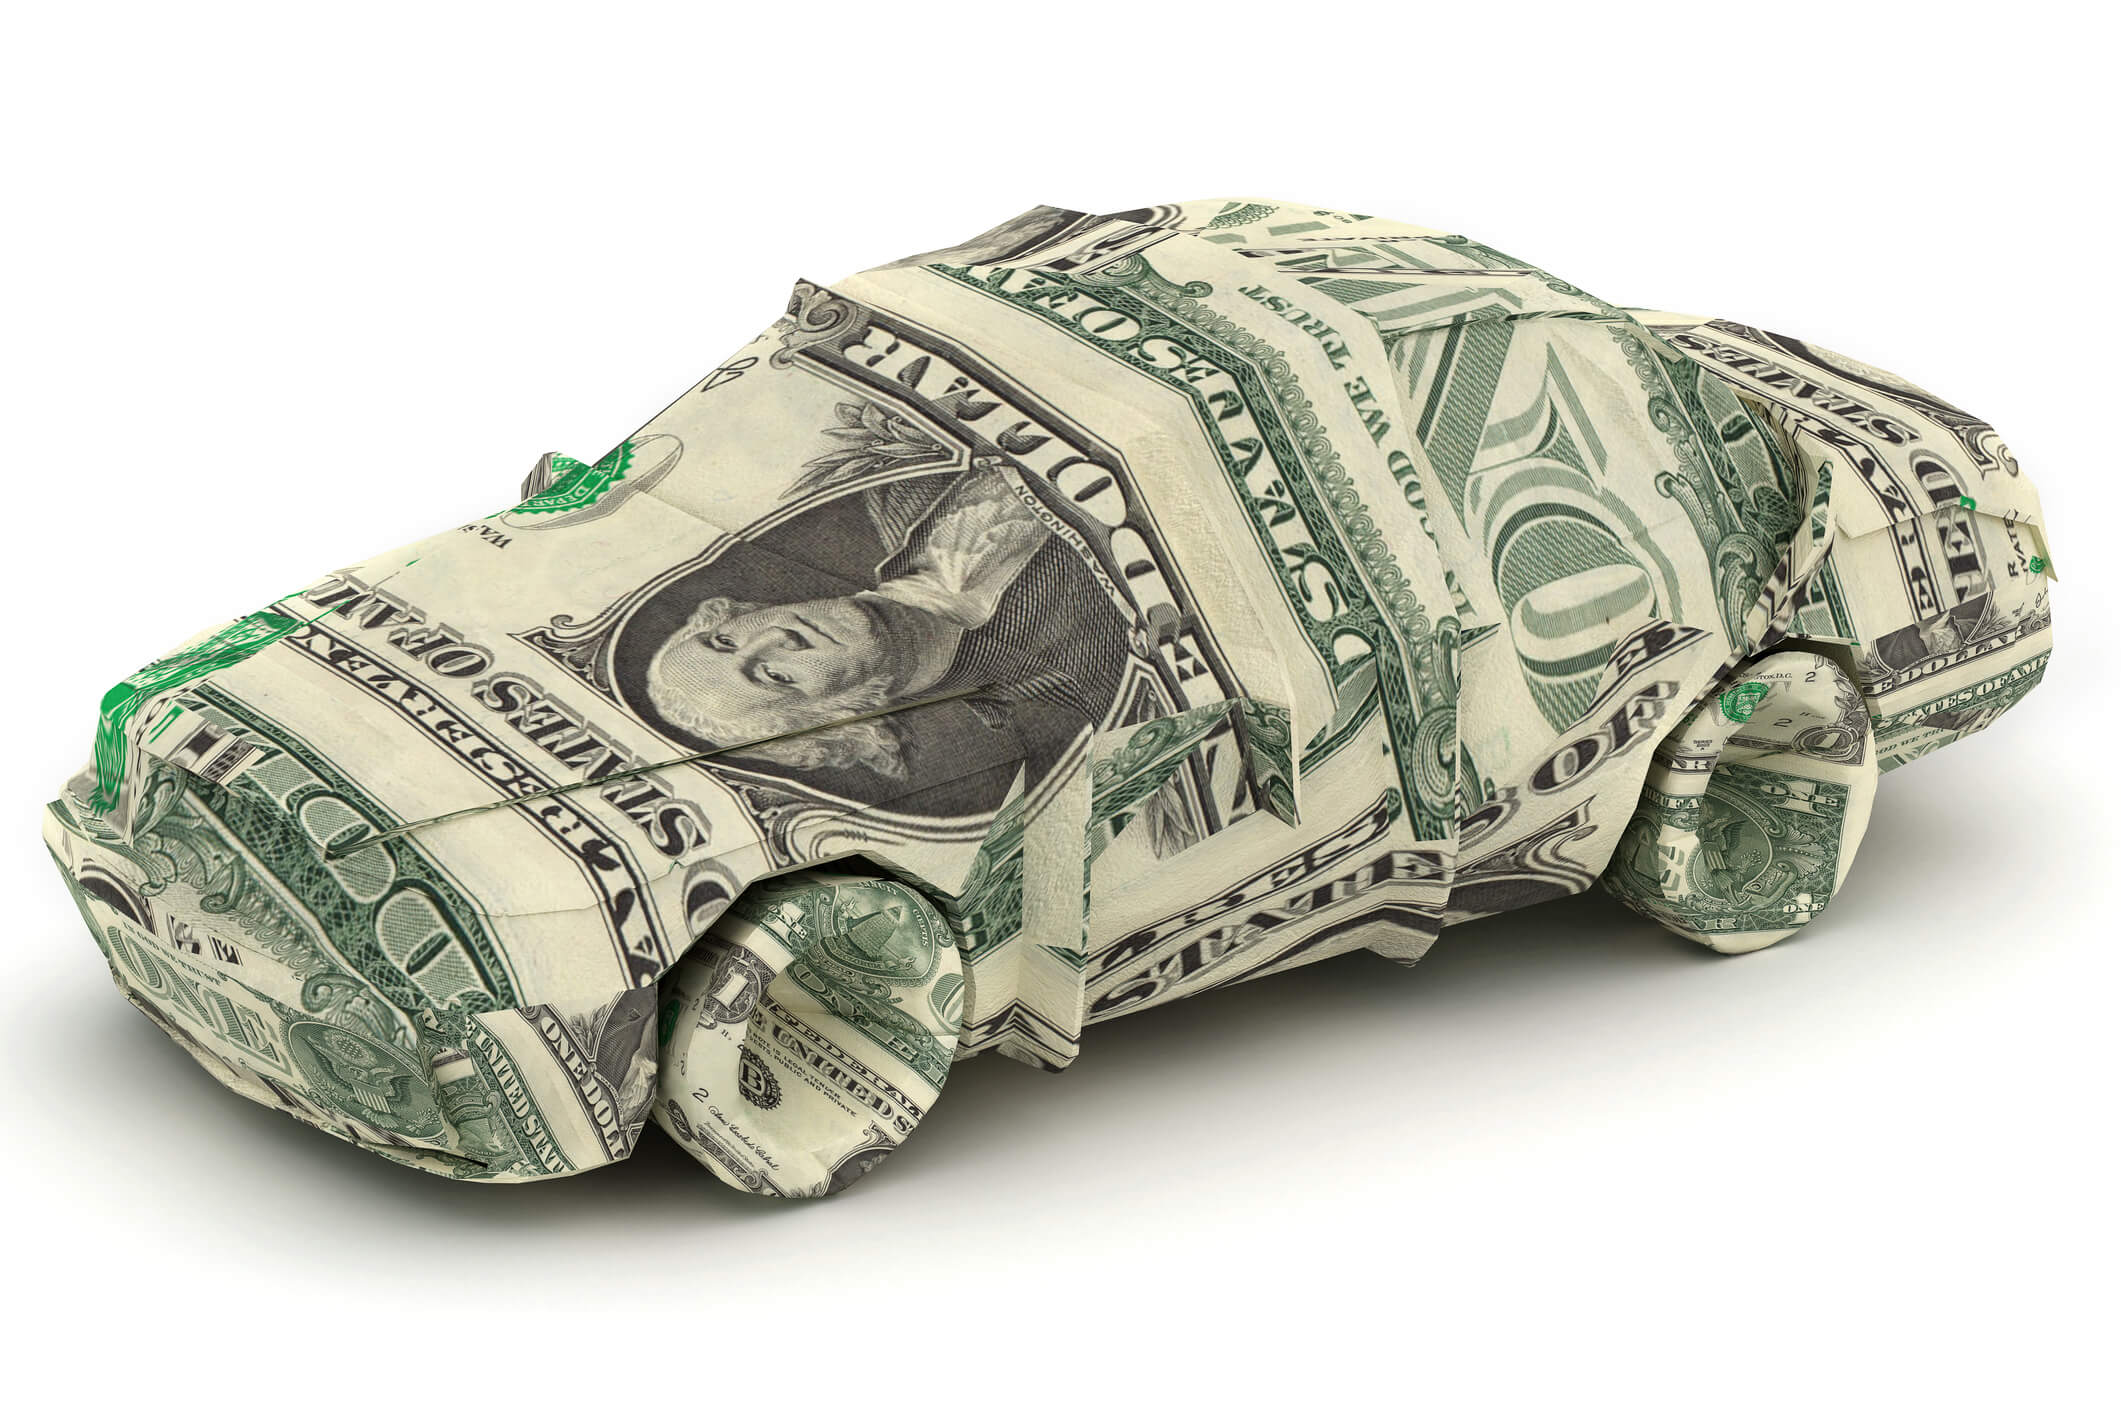 6 Ways to Finance Your Next Vehicle